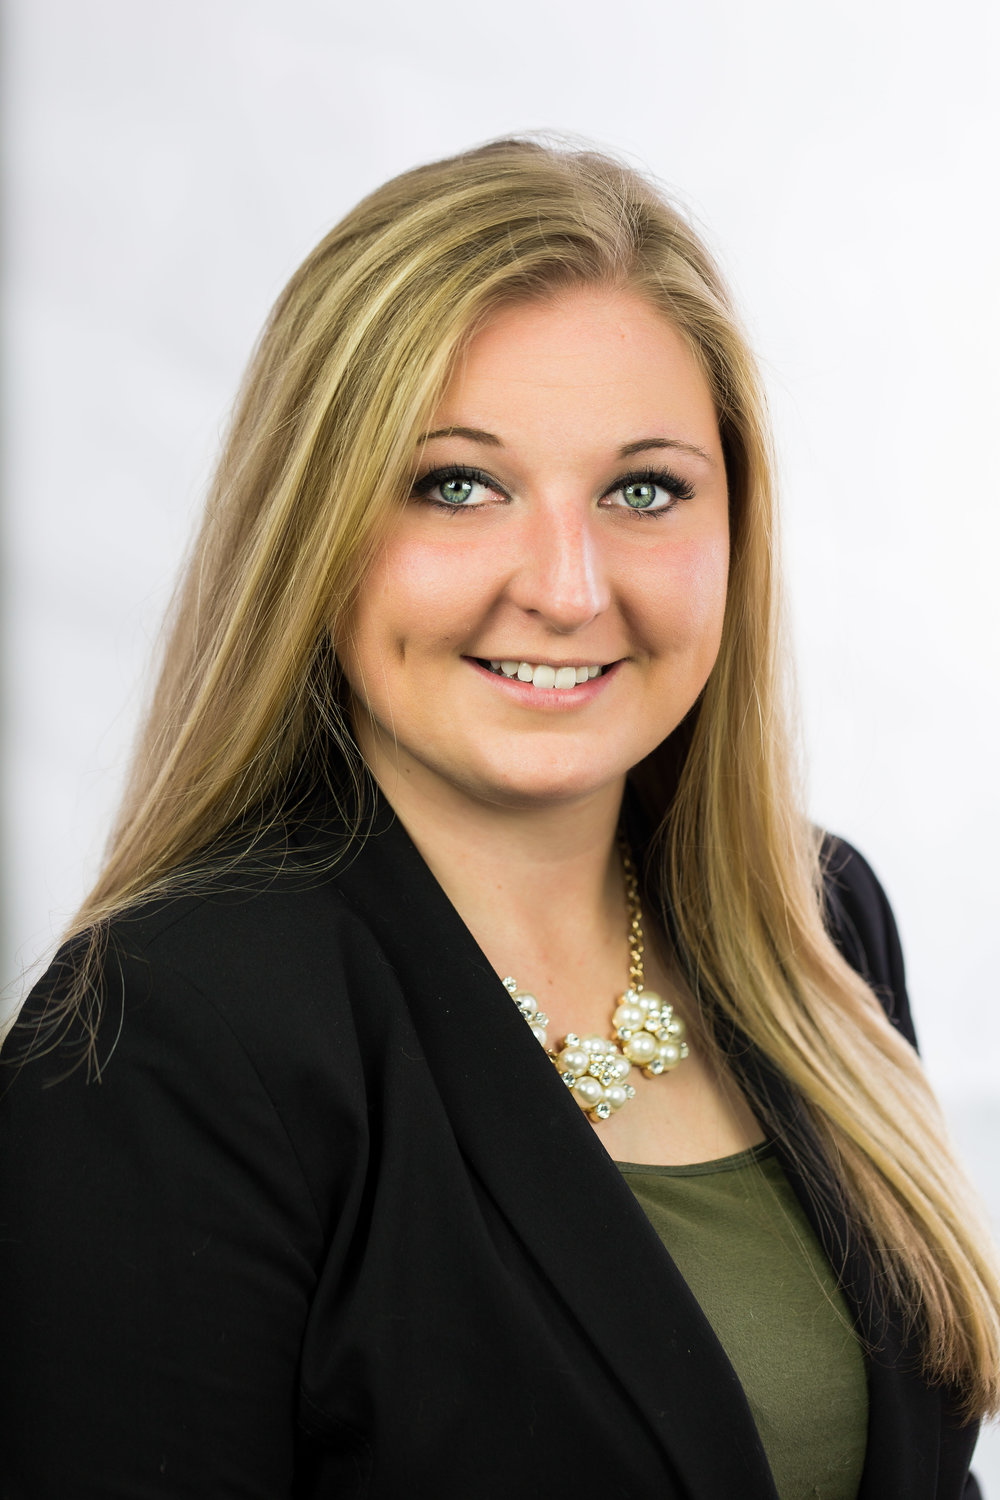 MKE headshots | Local Spotlight Brittany Voeks